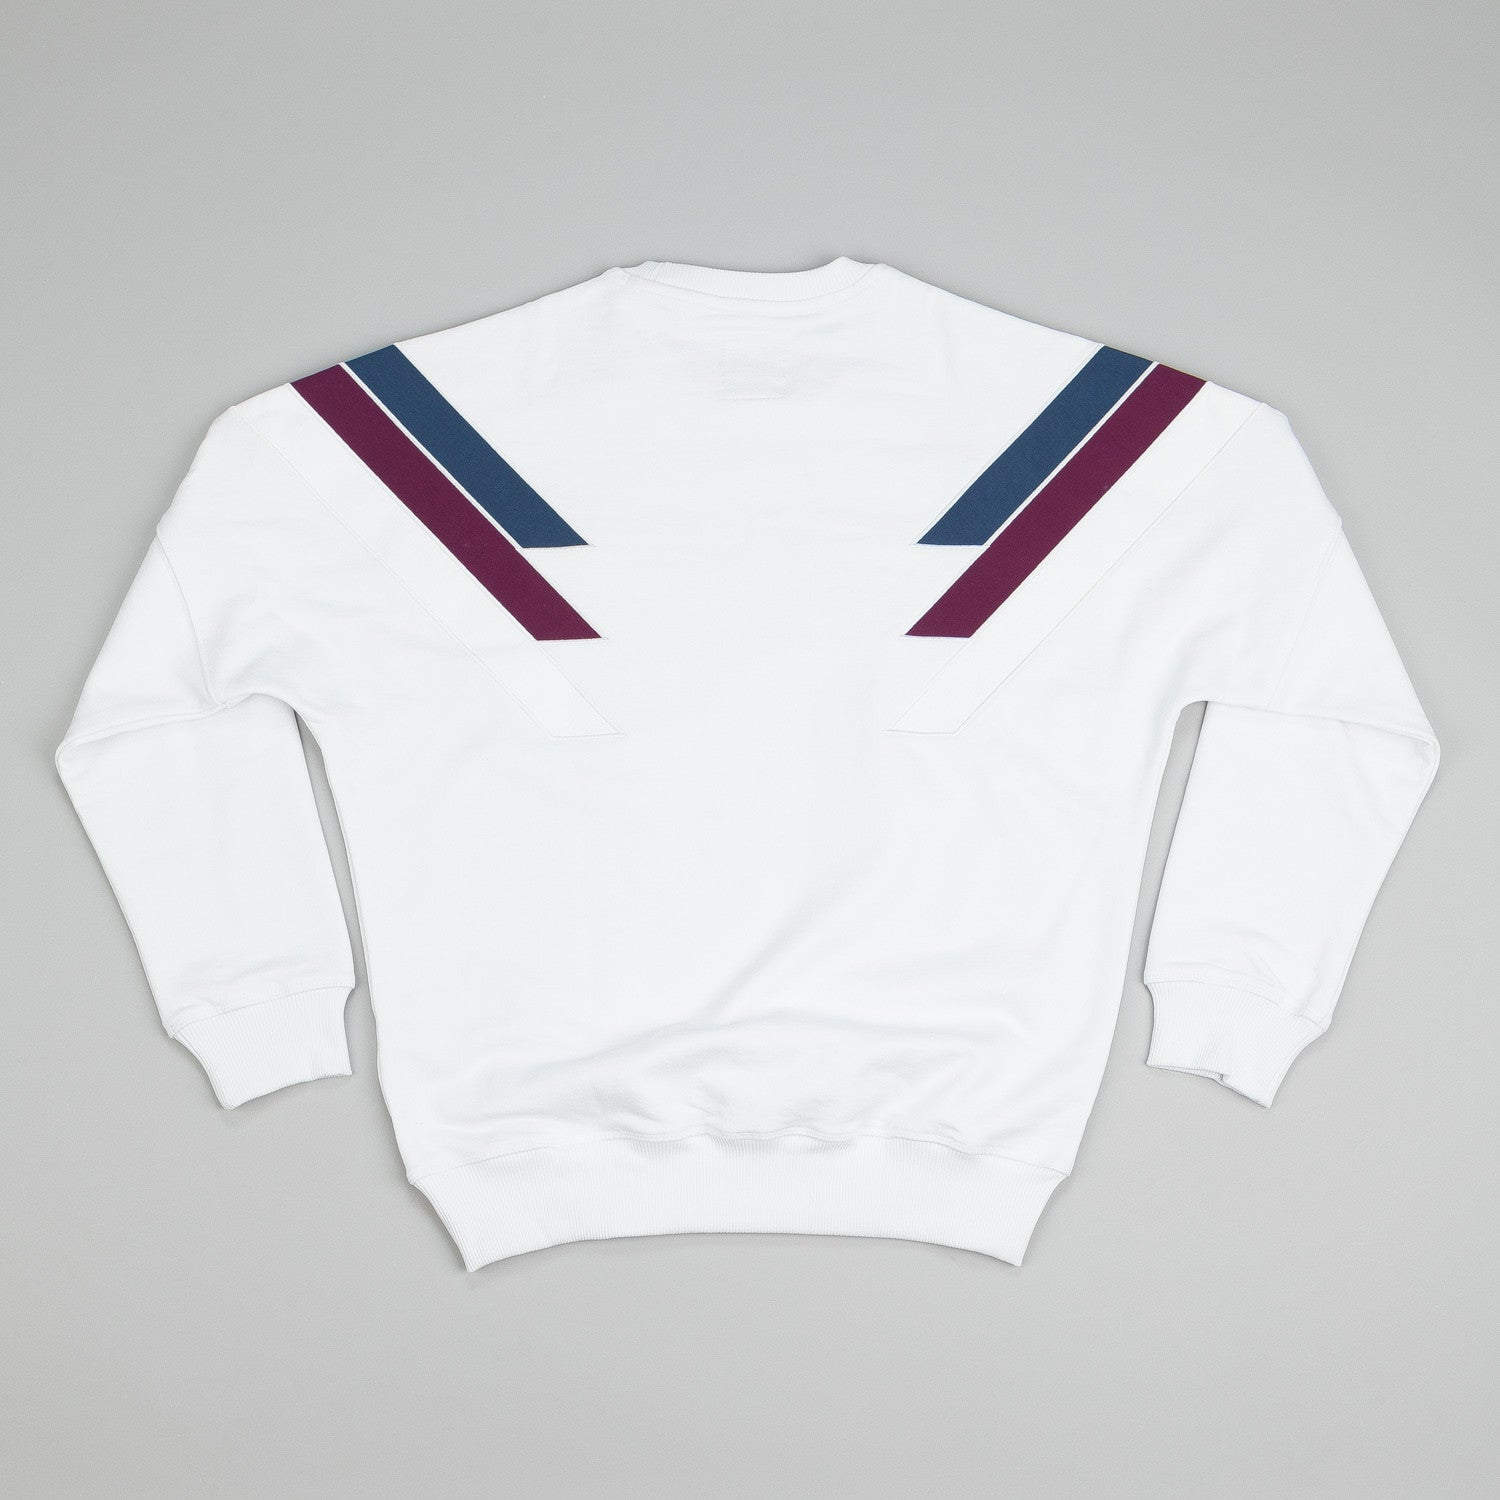 Adidas X Palace Stripe Crew Neck Sweatshirt White